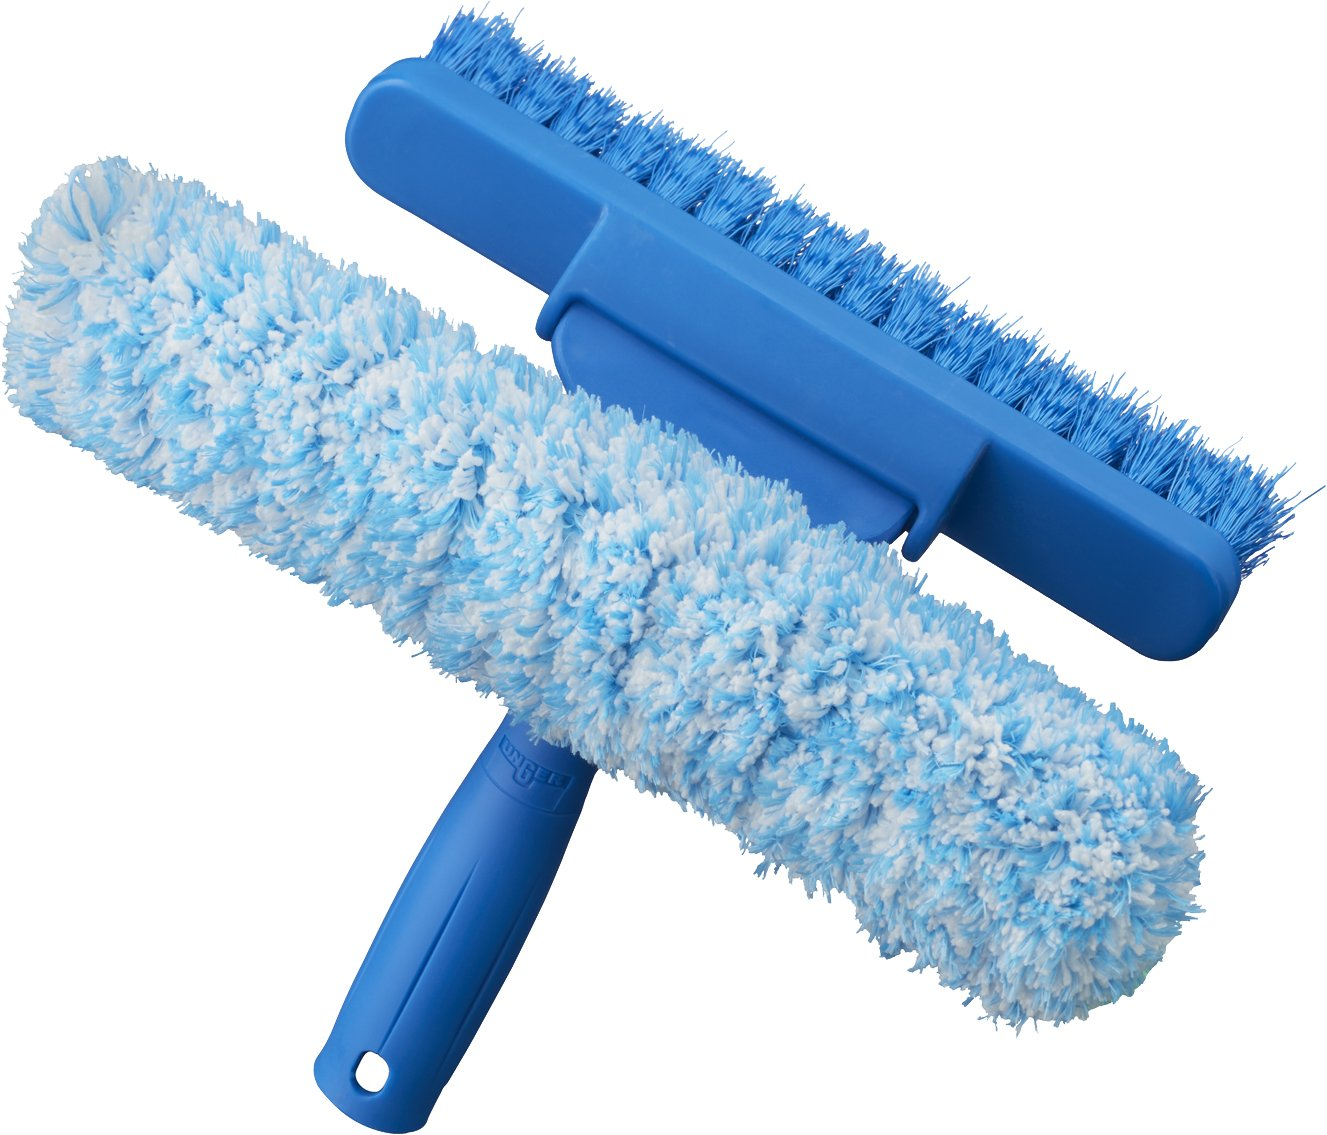 Unger Professional 2-in-1 Window Screen Cleaner with Brush and Scrubber, 11''